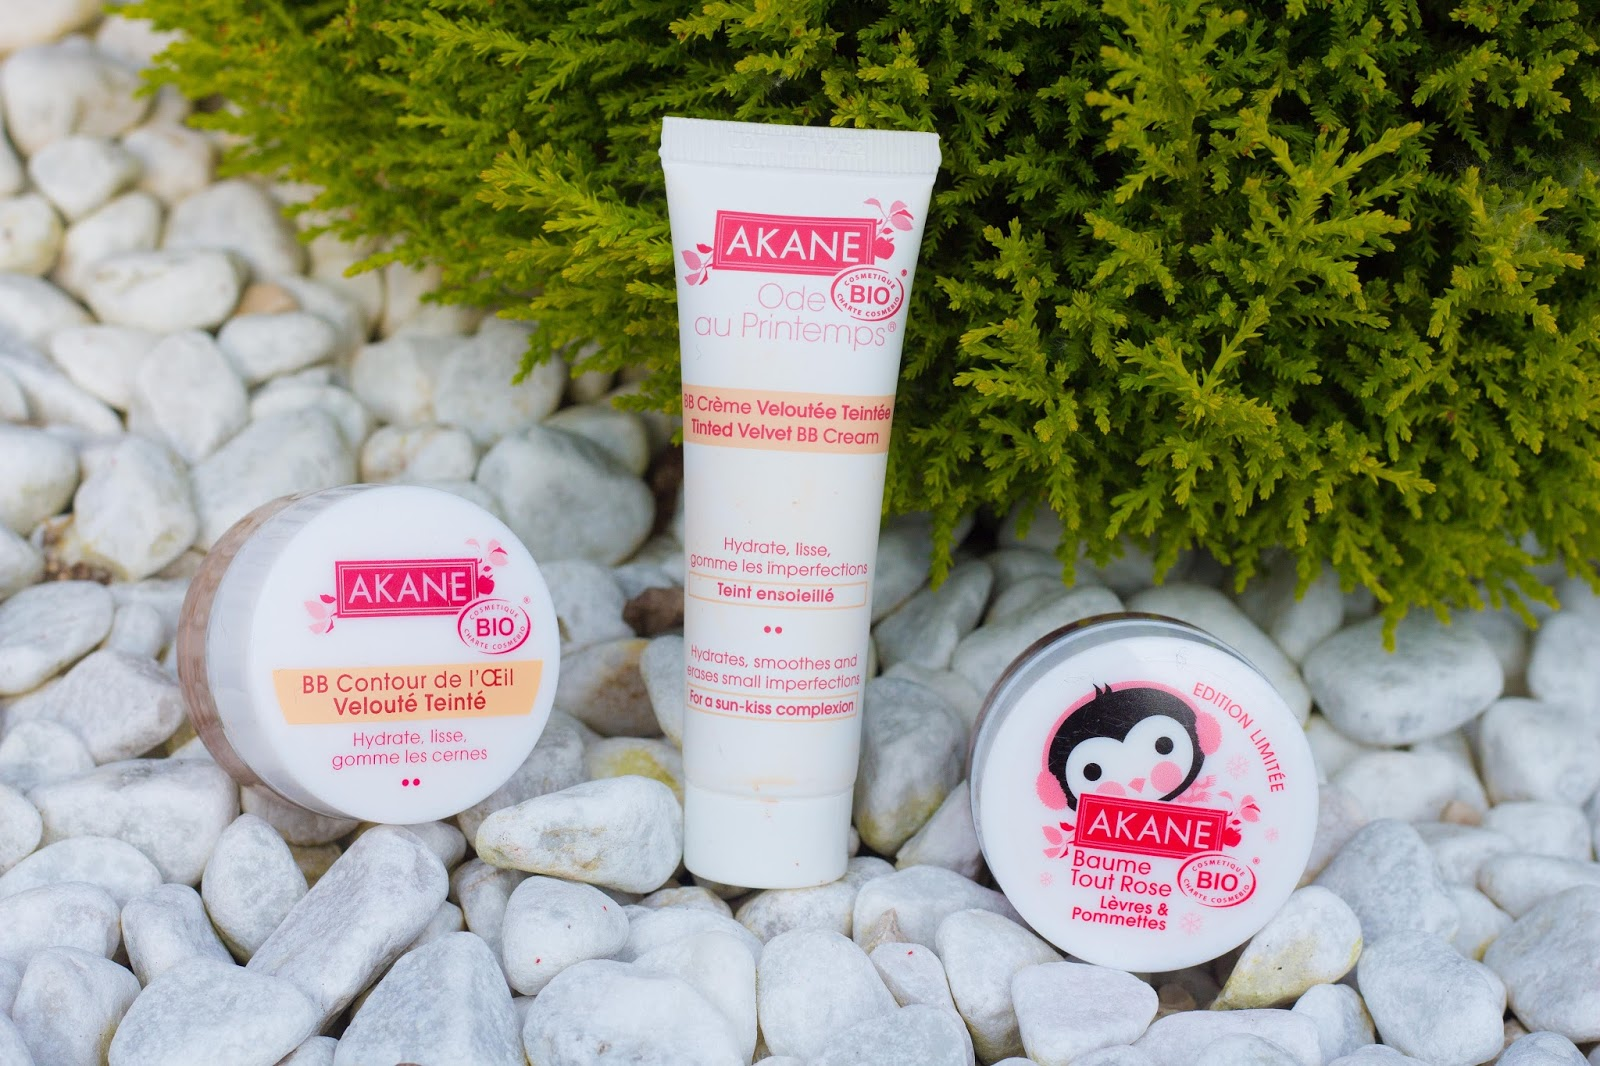 akane-routine-naturelle-bio-maquillage